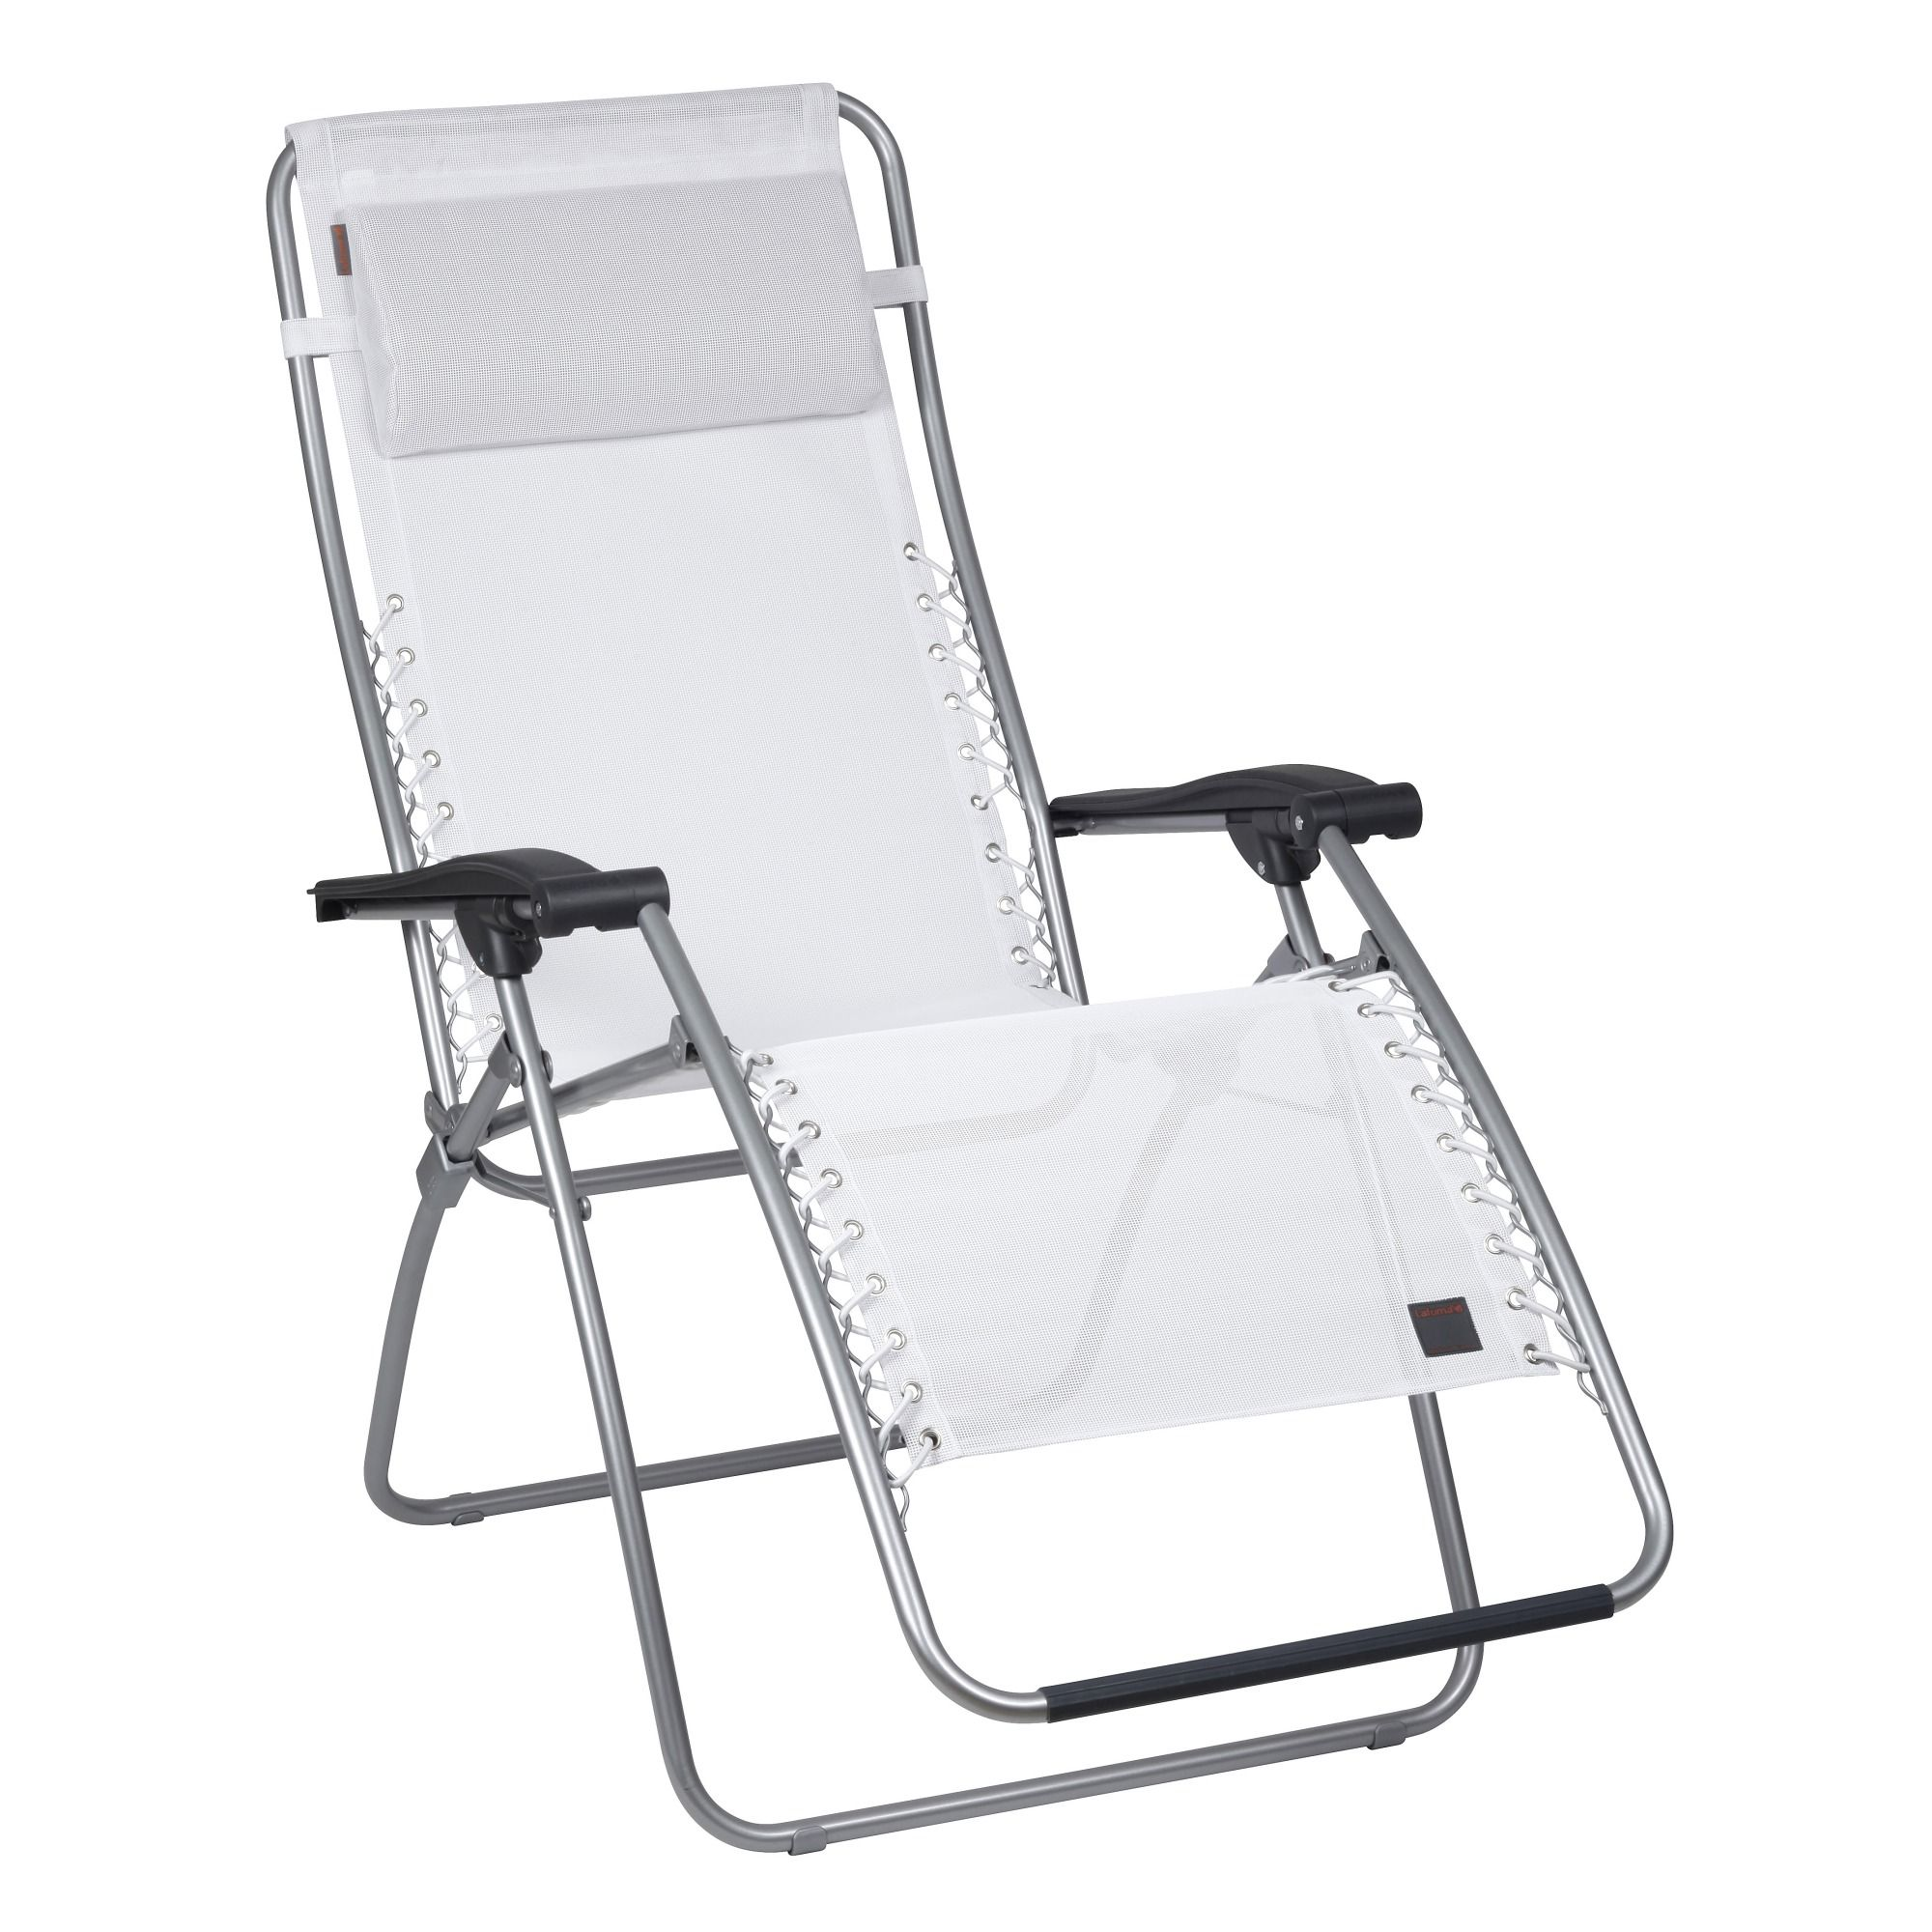 magnificent chairs additional small with of inspiration outdoor decor home about recliner remodel excellent styles chair